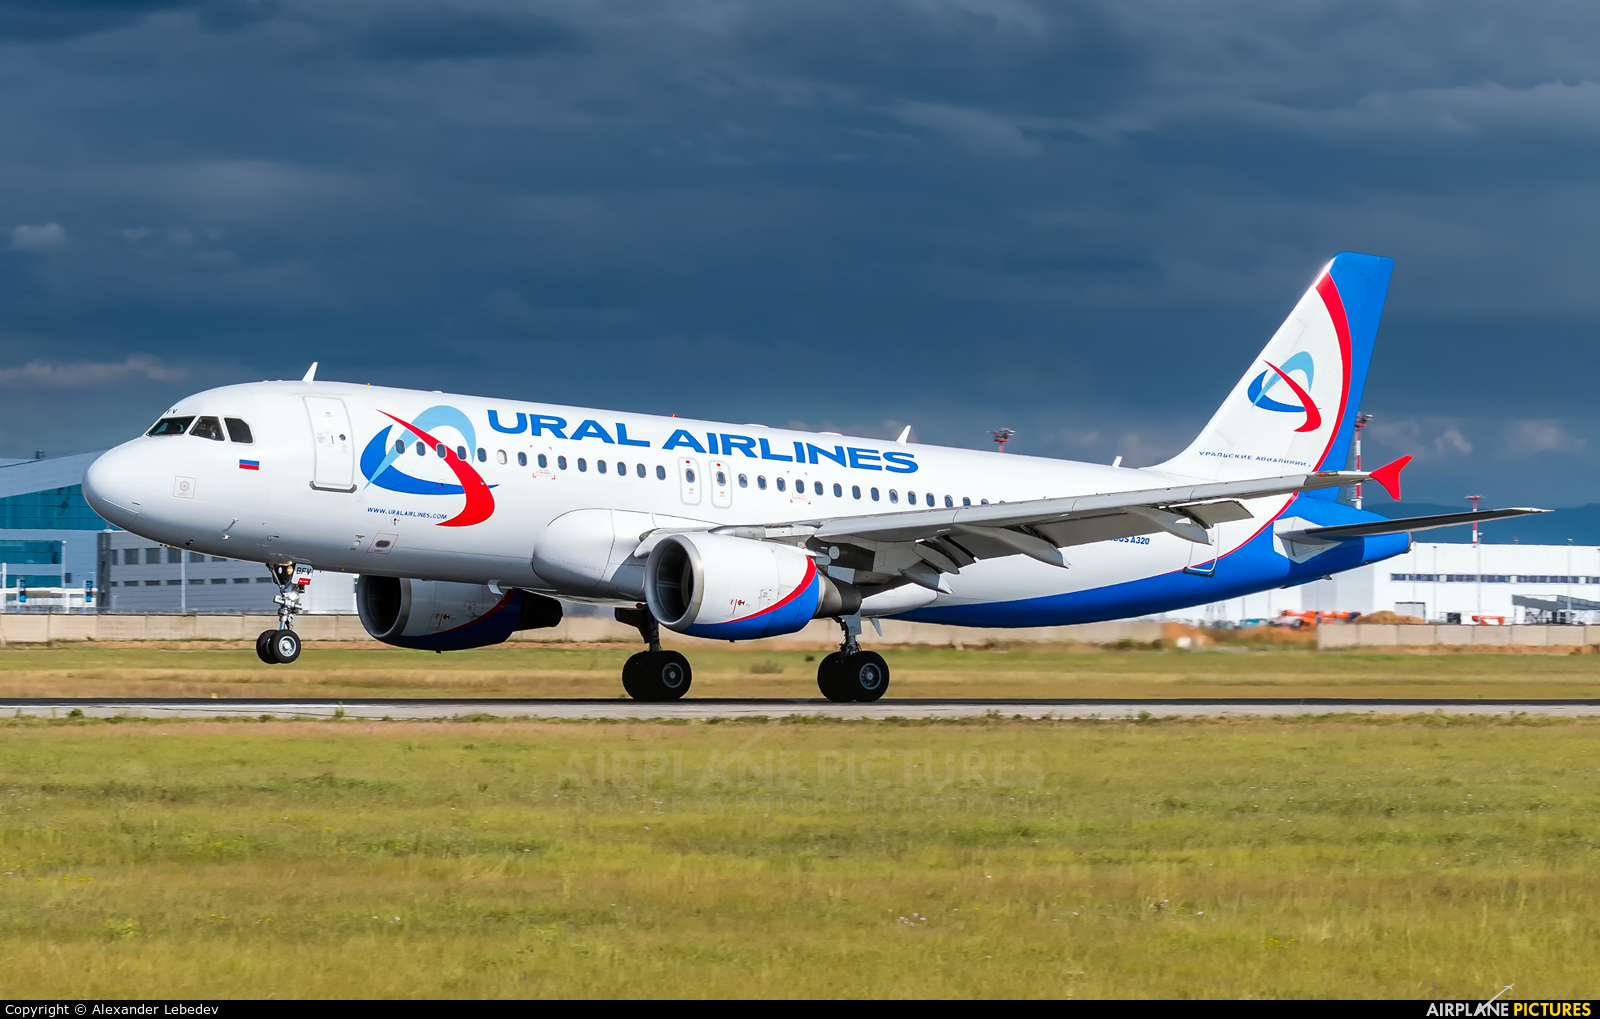 Ural Airlines VQ-BFV aircraft at Undisclosed Location